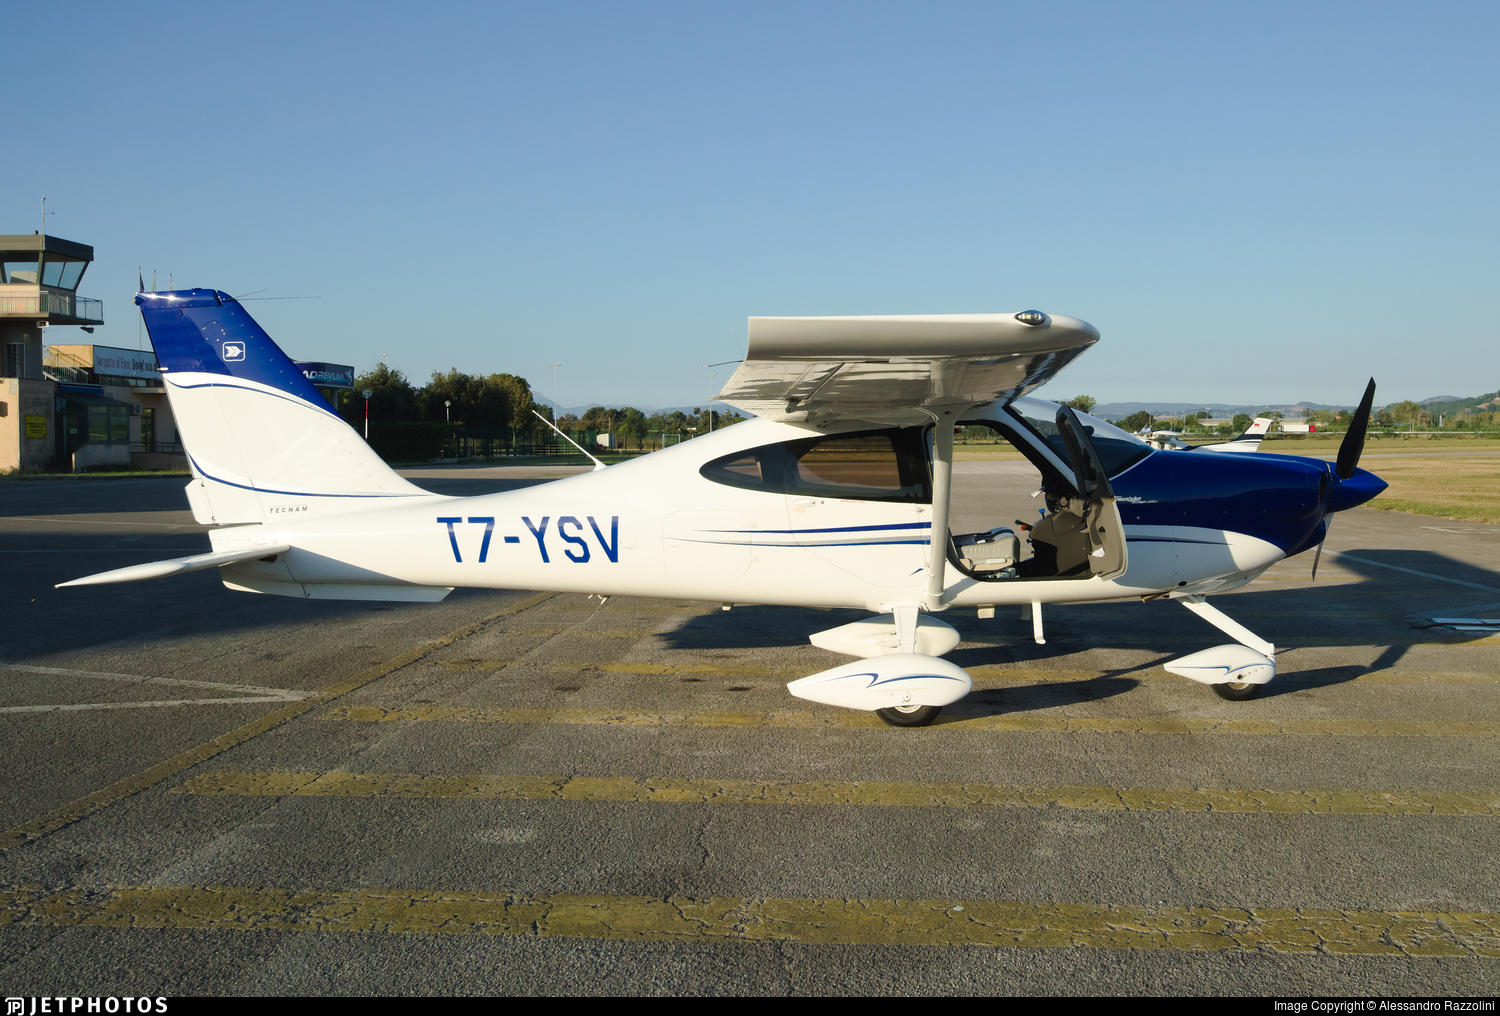 T7-YSV - Tecnam P2010 - Eagles Aviation Academy